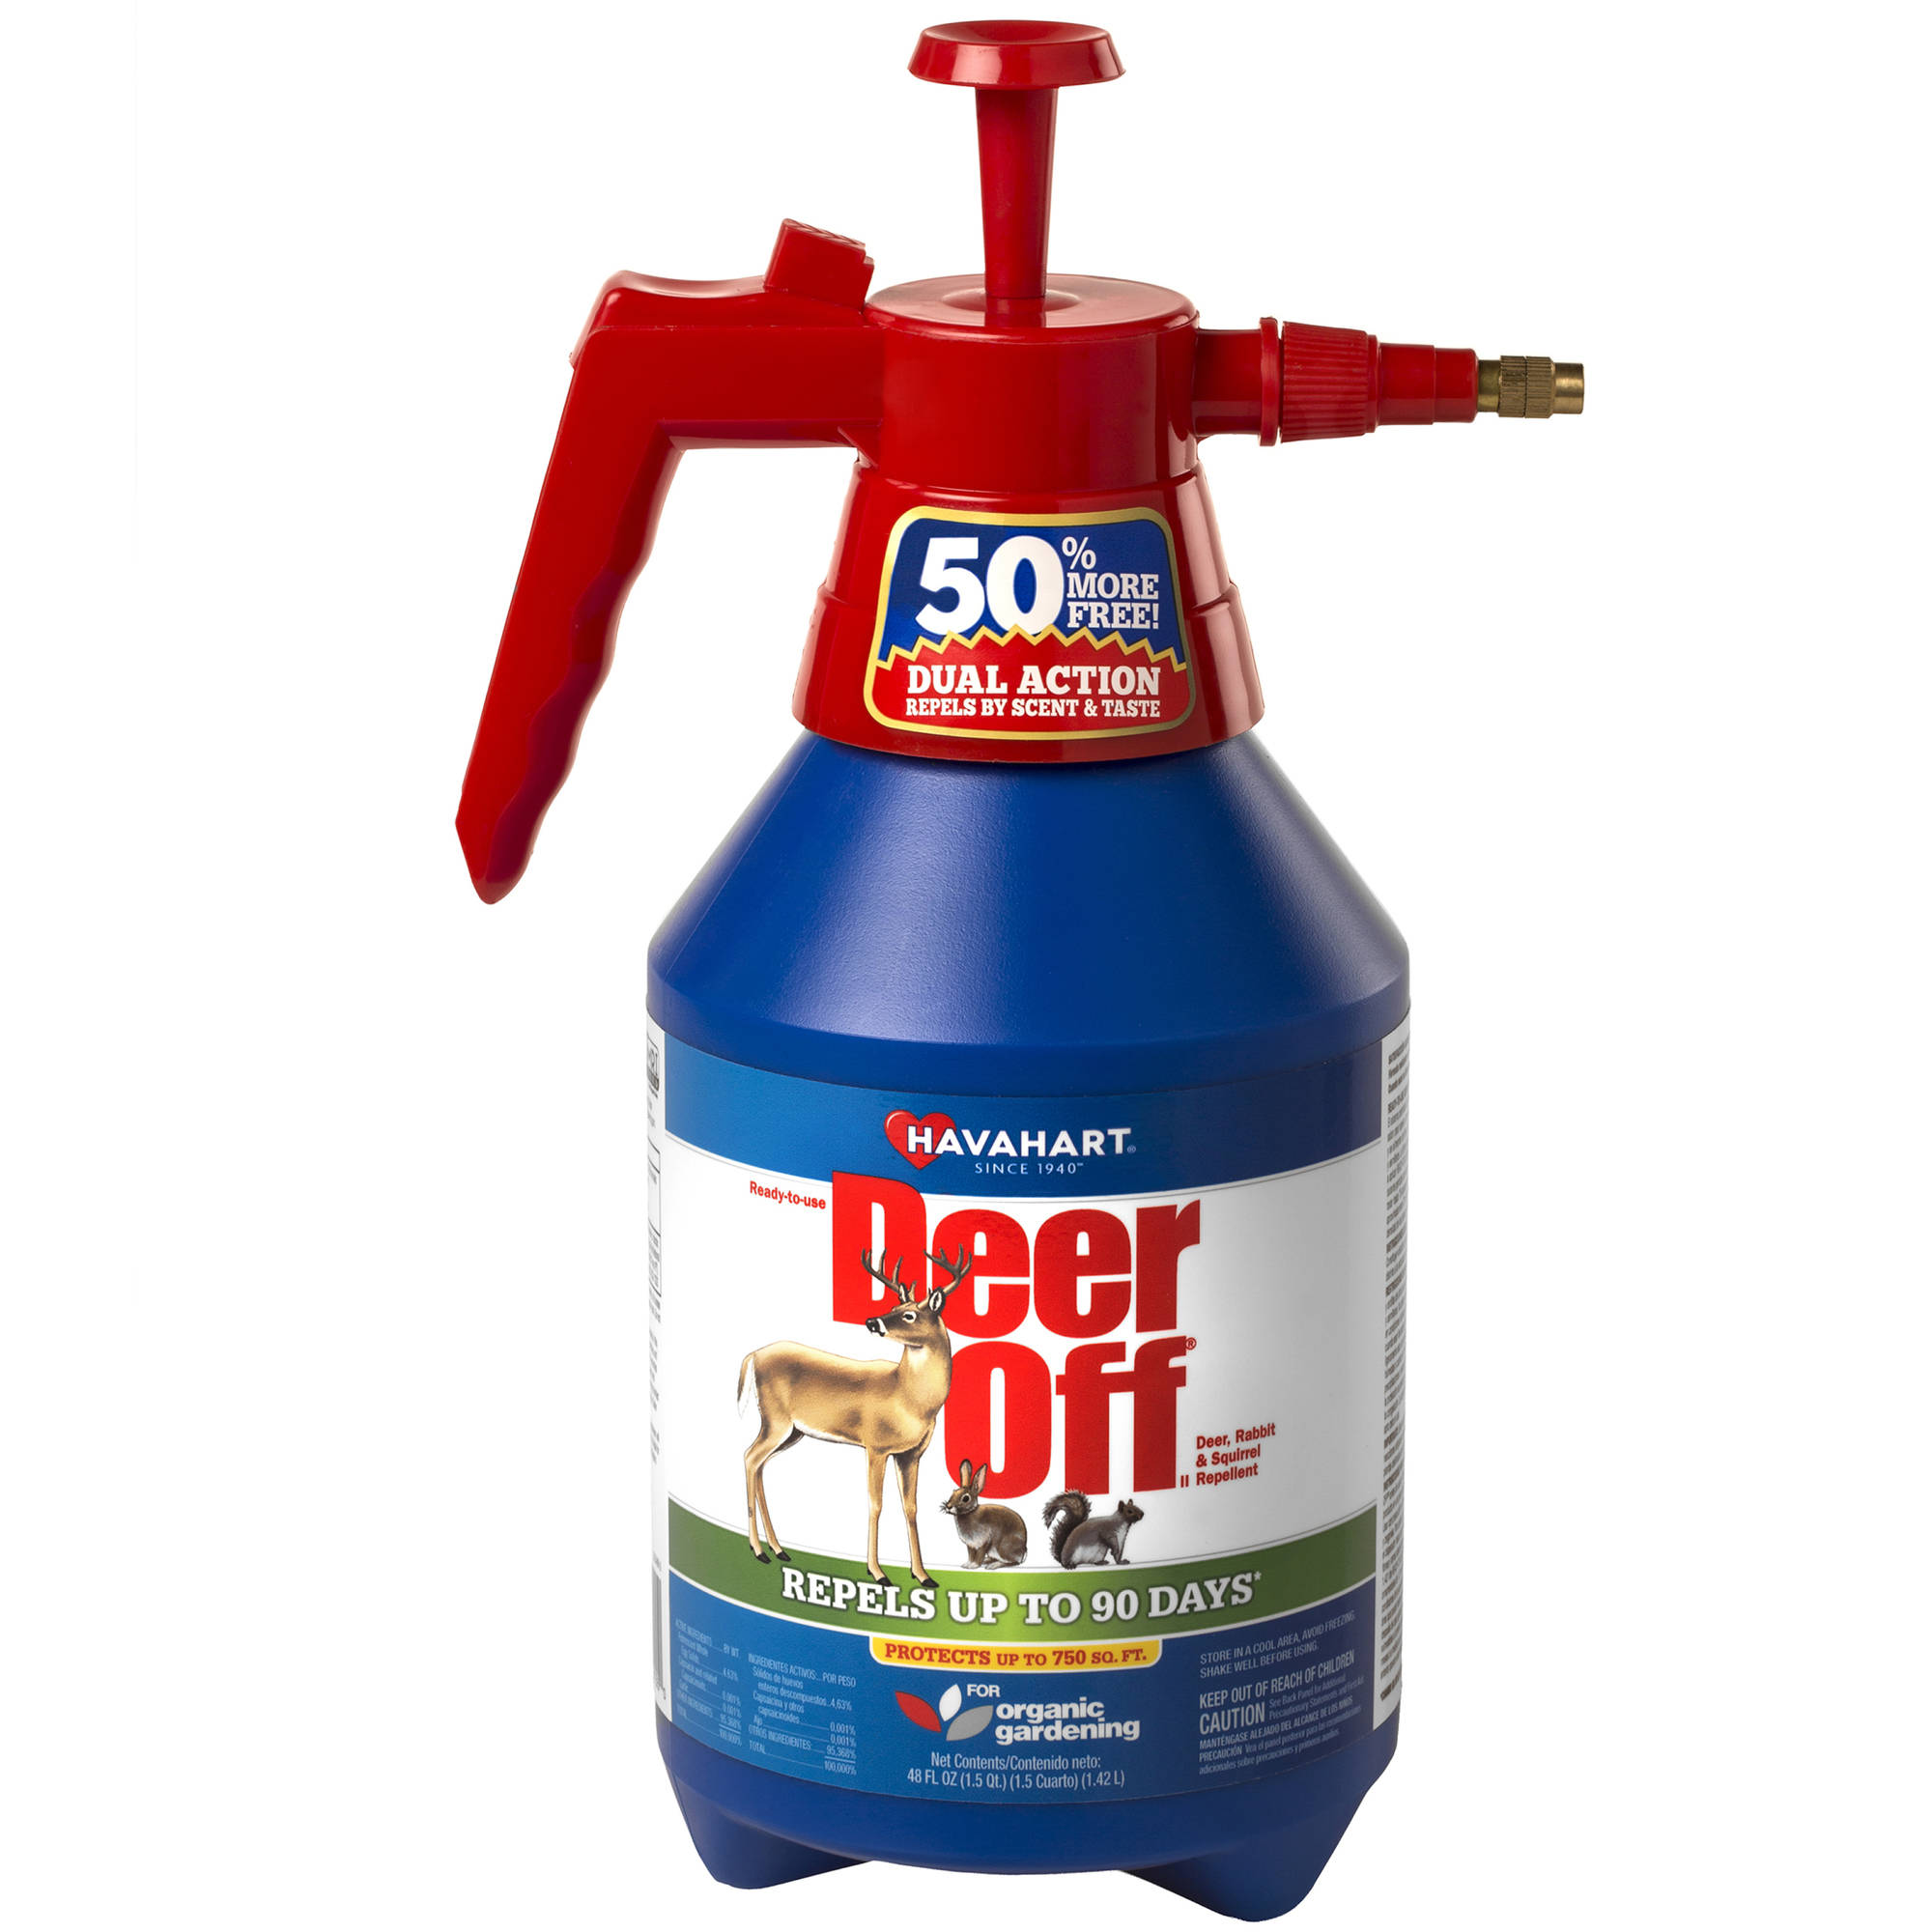 Havahart Deer Off II 48 oz. Ready-To-Use Deer, Rabbit & Squirrel Repellent